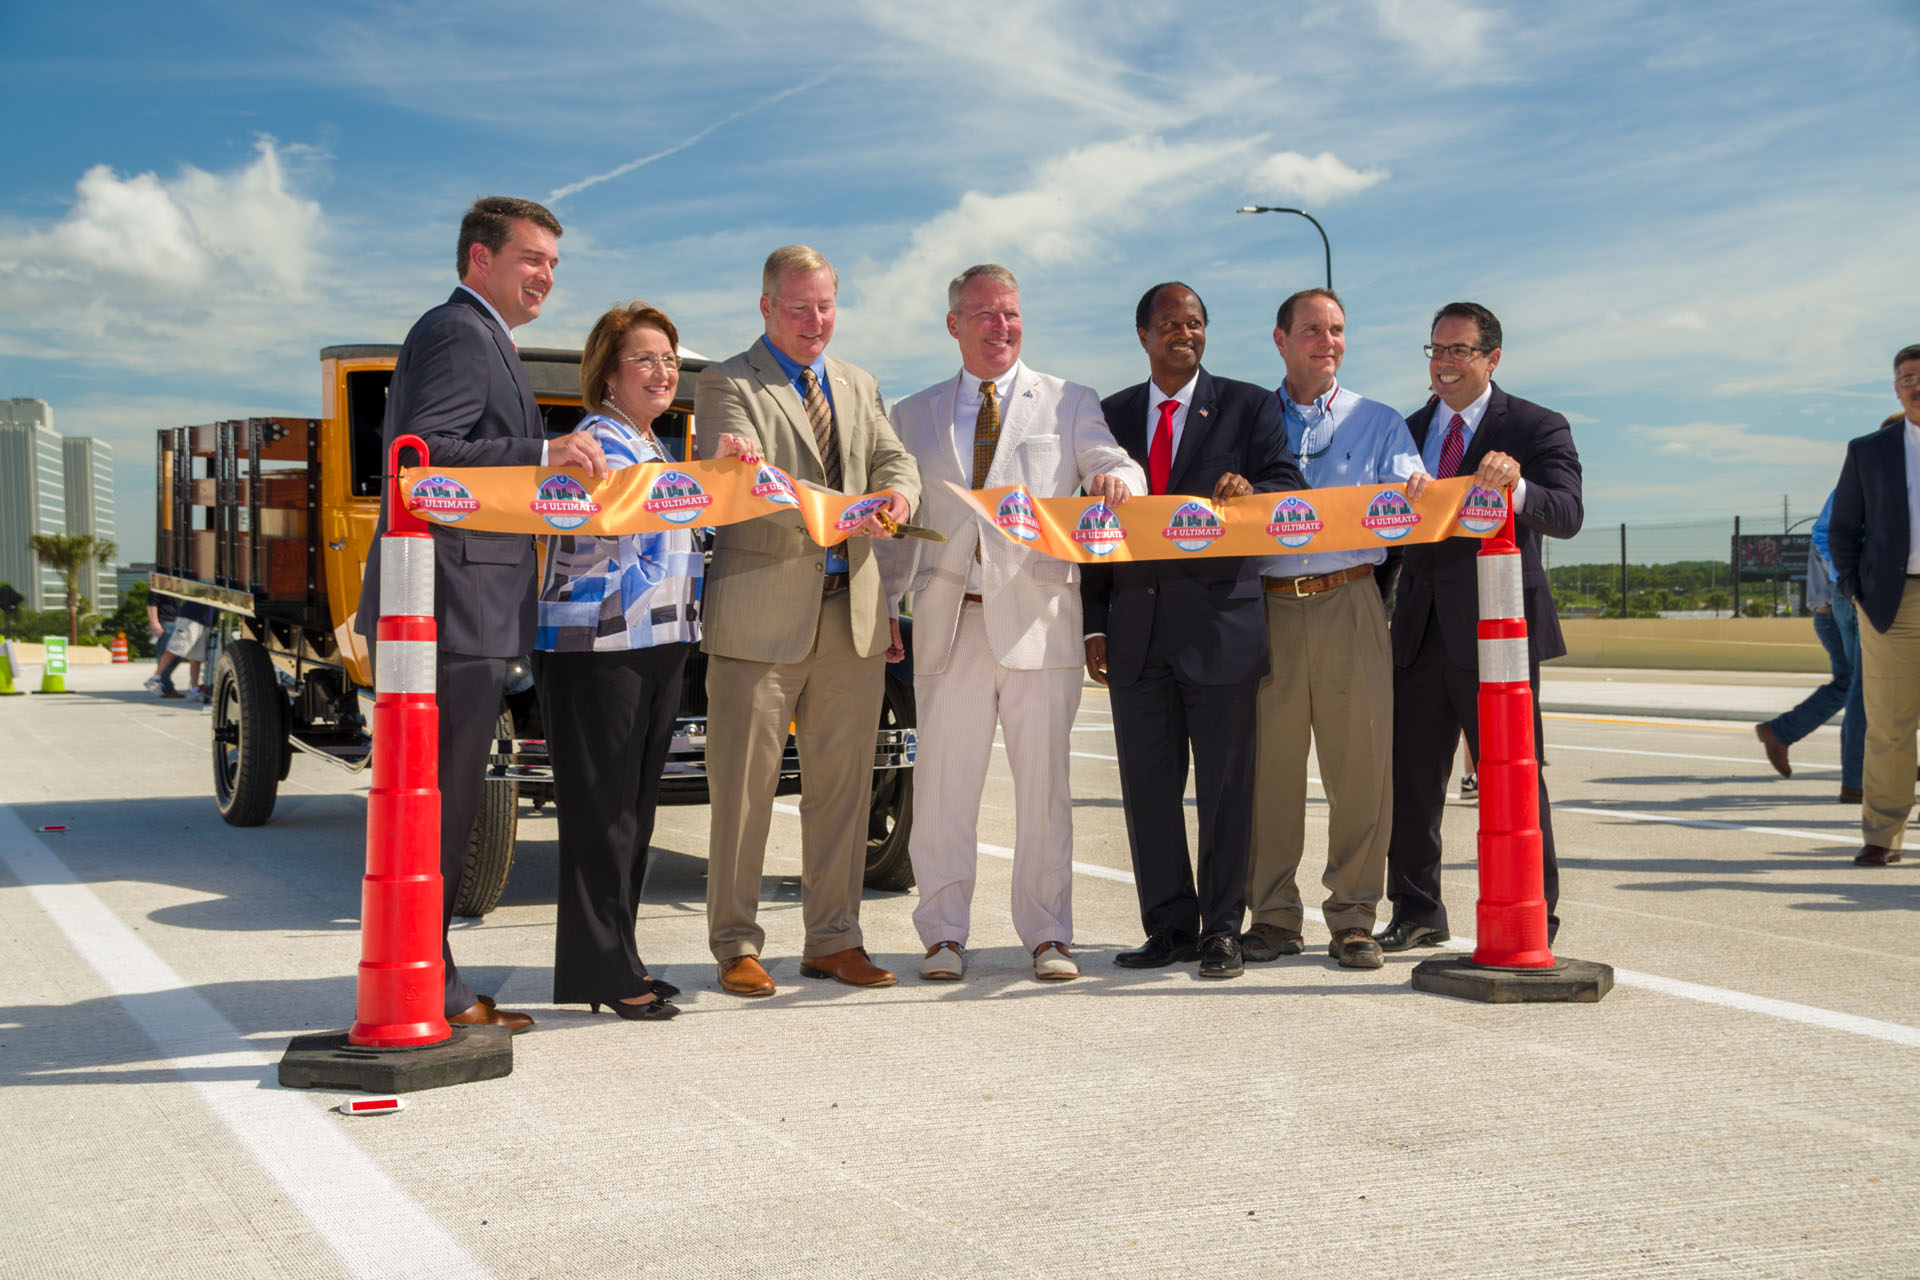 Global-5 organizes media event for ribbon-cutting ceremony to open Grand National Drive I-4 overpass